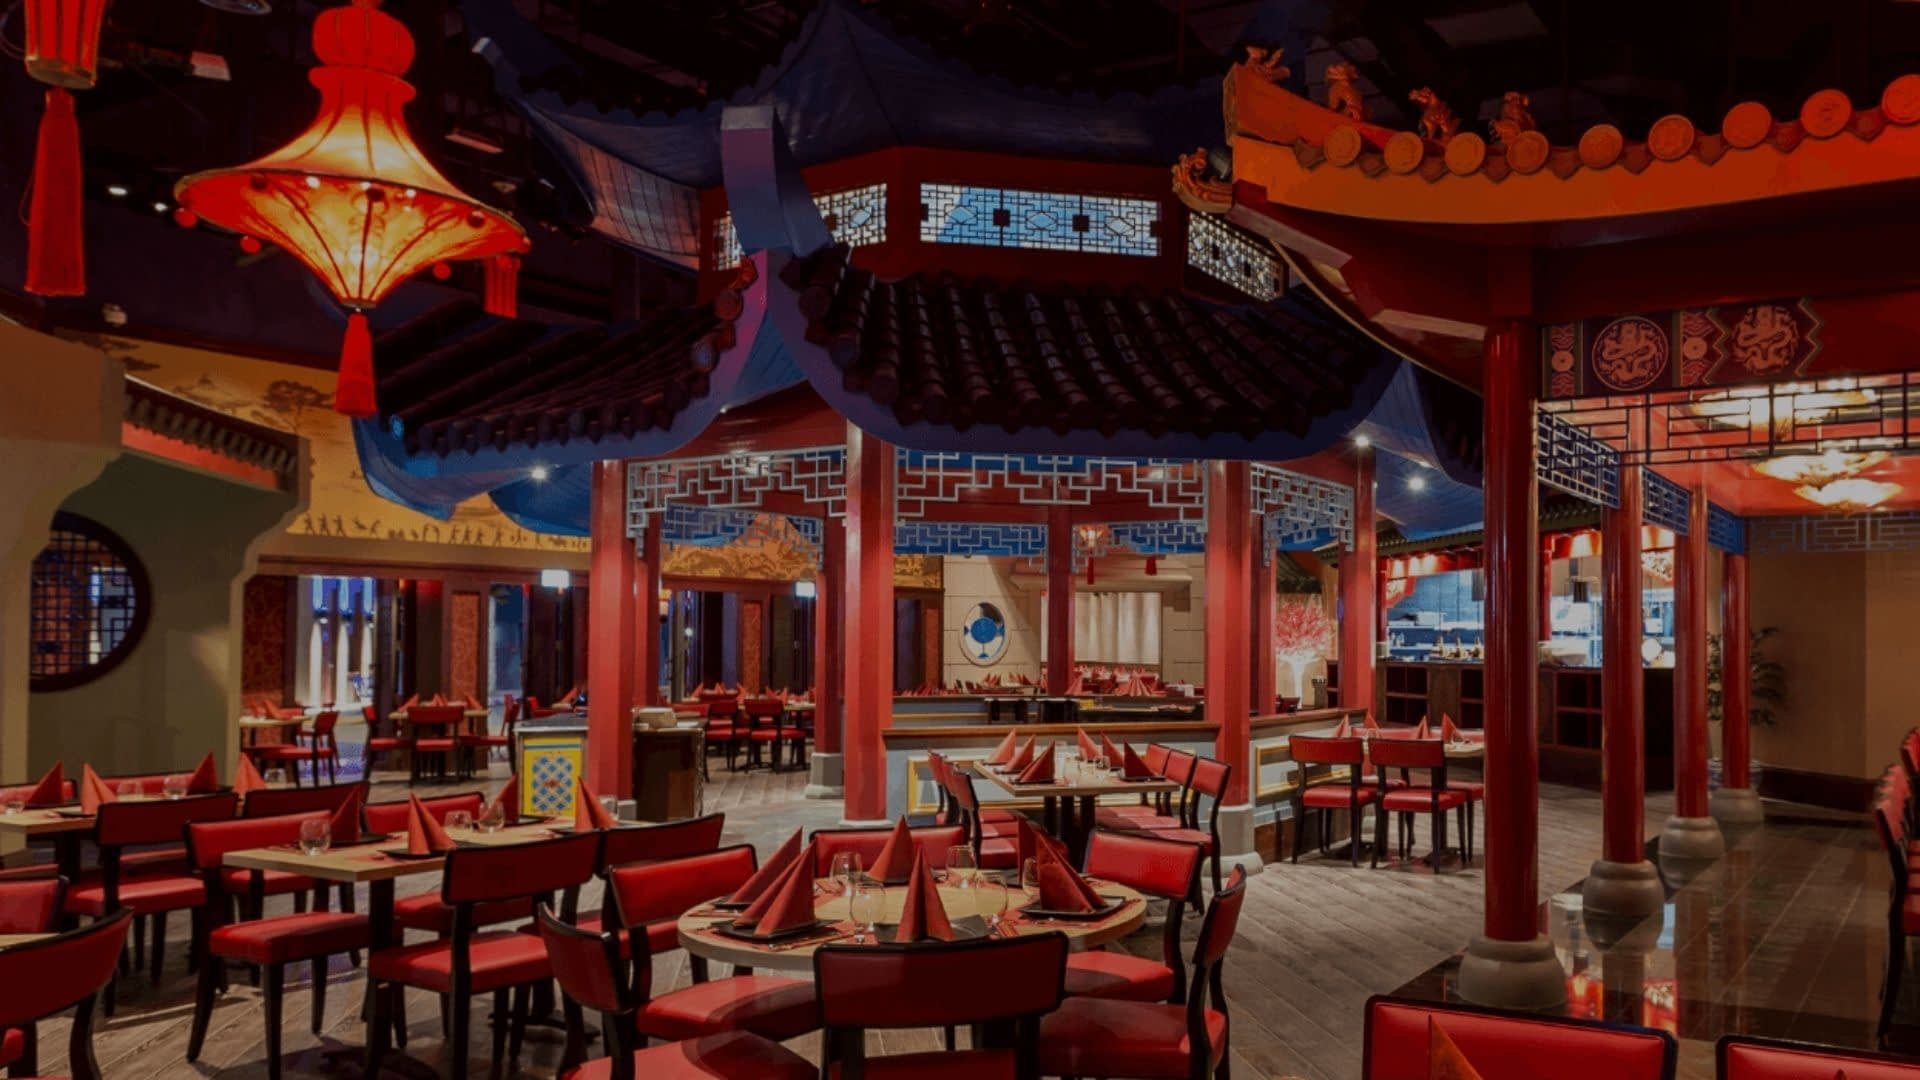 Chang's Golden Dragon Restaurant at IMG Worlds of Adventure